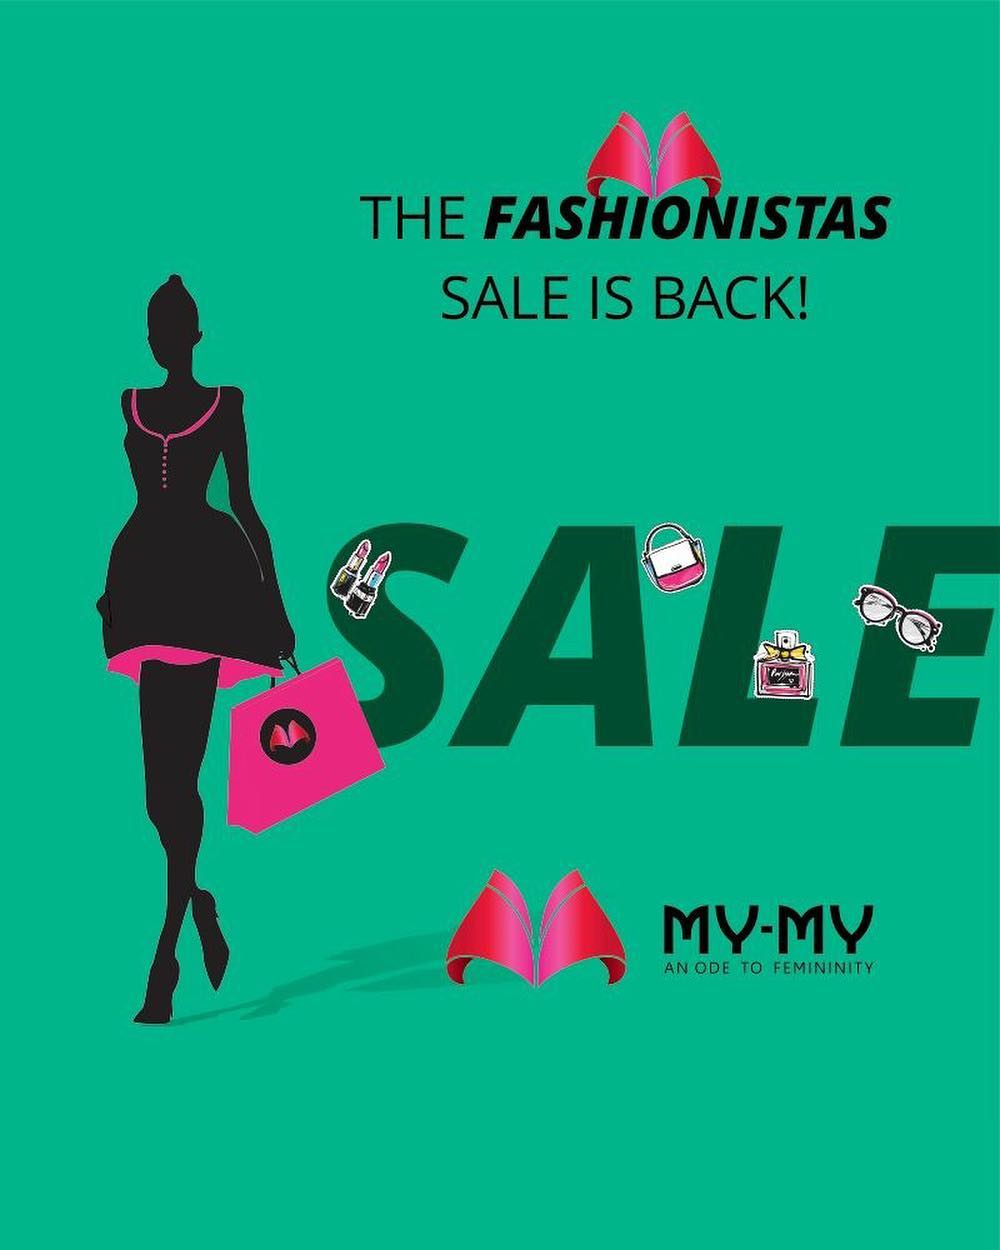 The My-My Sale is here, put your shopping shoes on & splurgeeee! 👠😍🚨💃👖👗👜🛍️ #MyMy #MyMyAhmedabad #Fashion #Ahmedabad #FemaleFashion